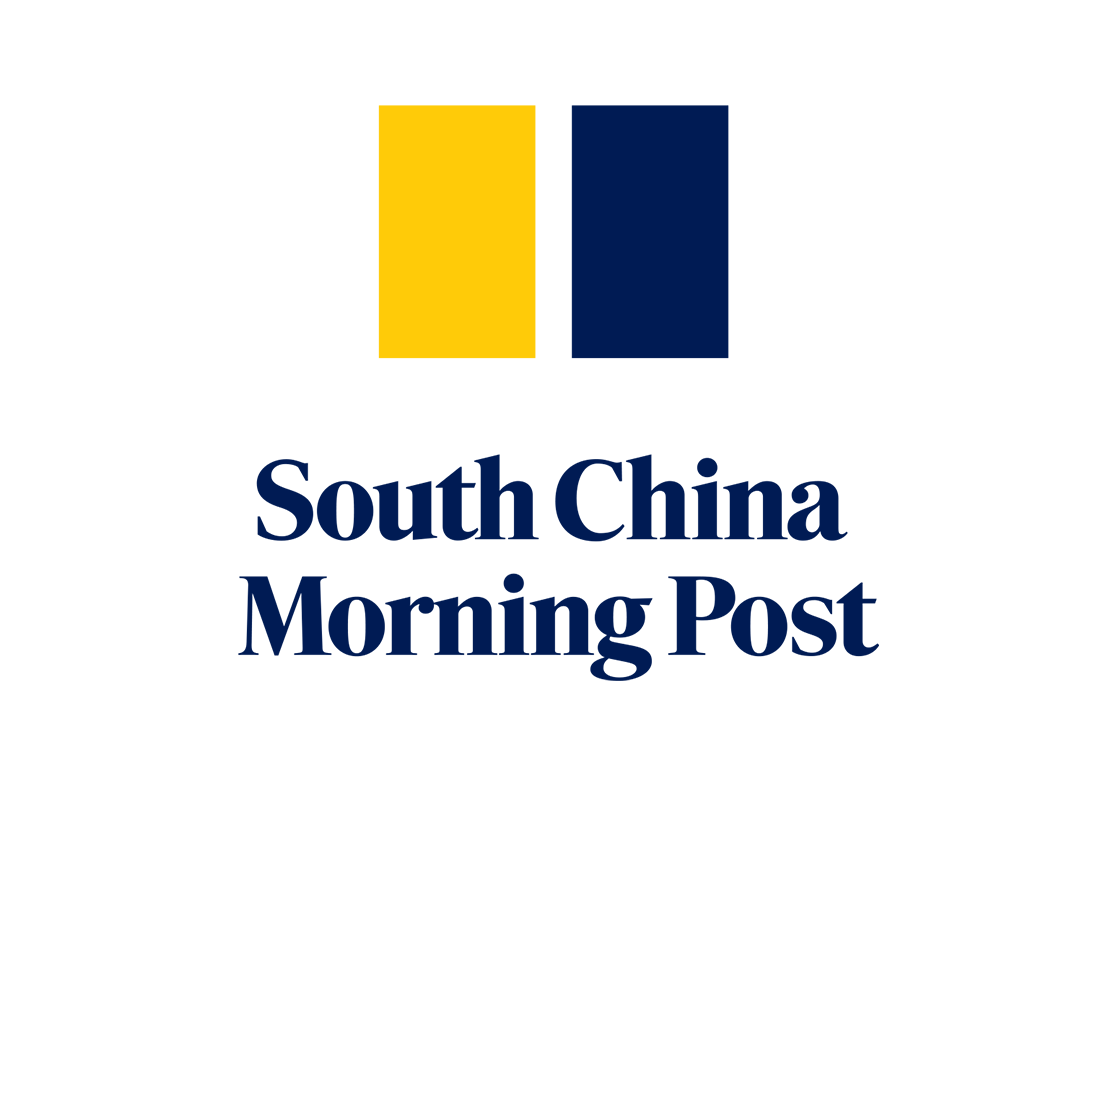 South-China-Morning-Post-Logo03